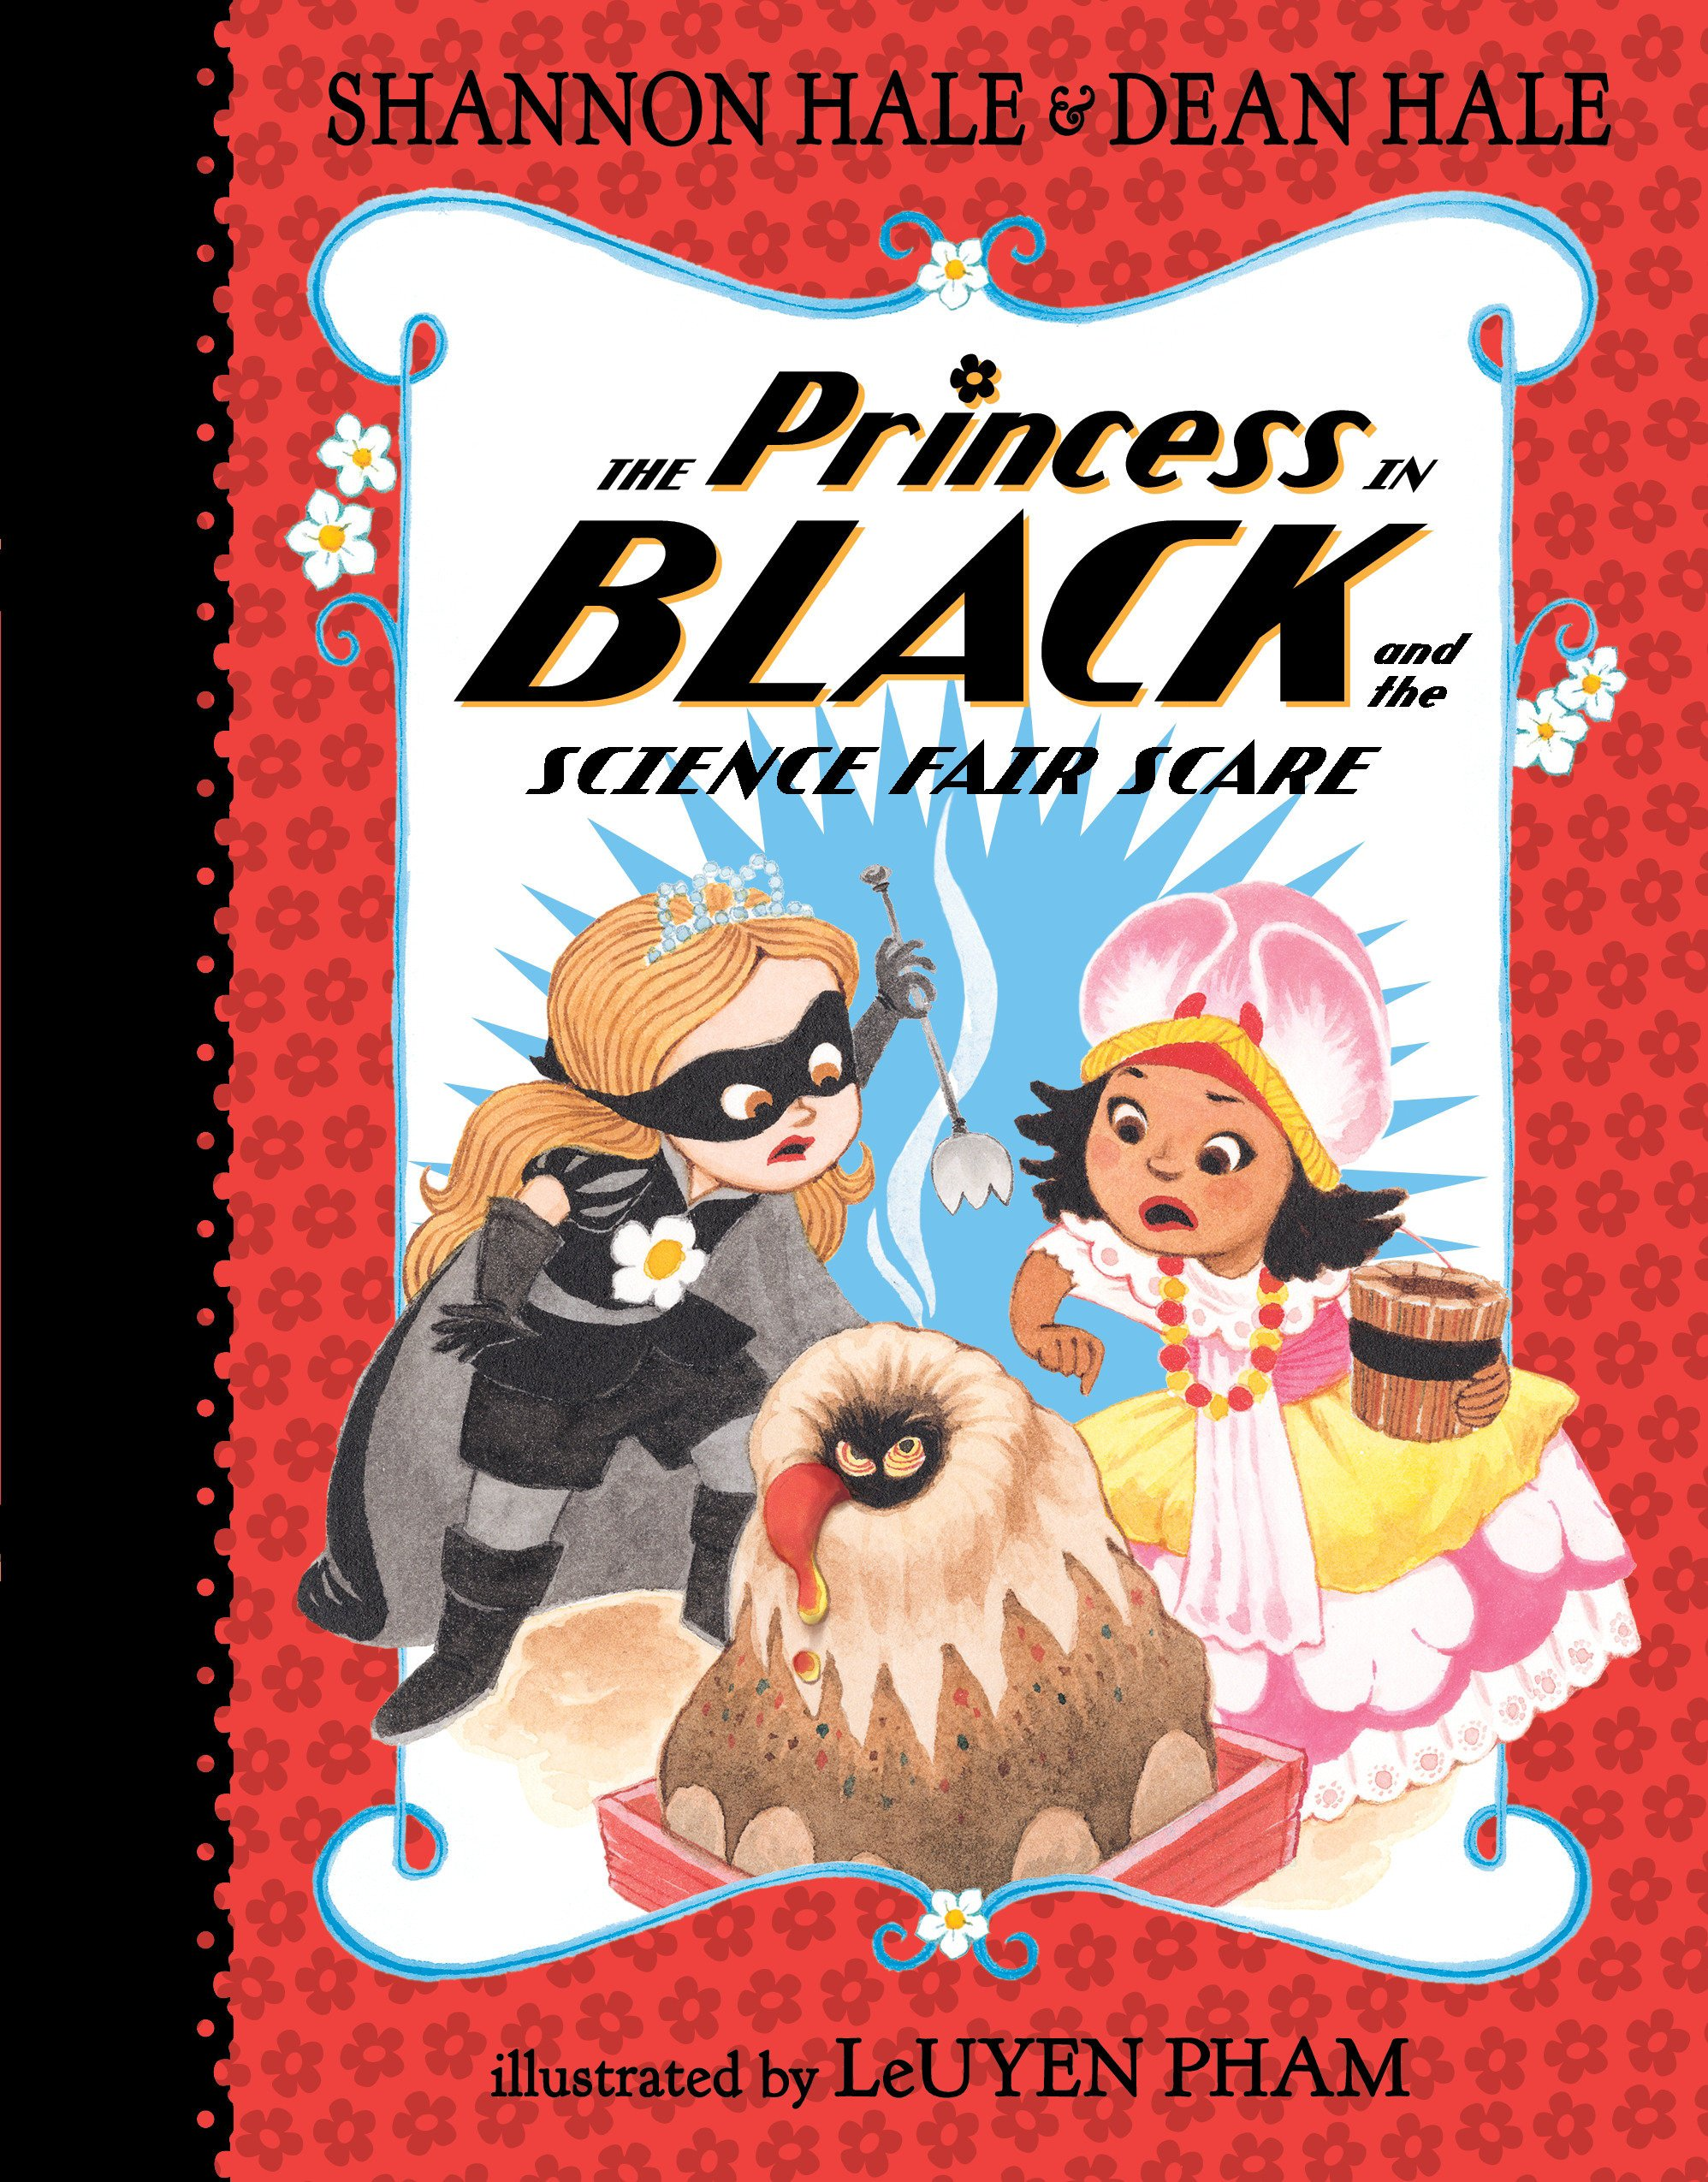 Princess in Black and the Science Fair Scare , by Shannon Hale